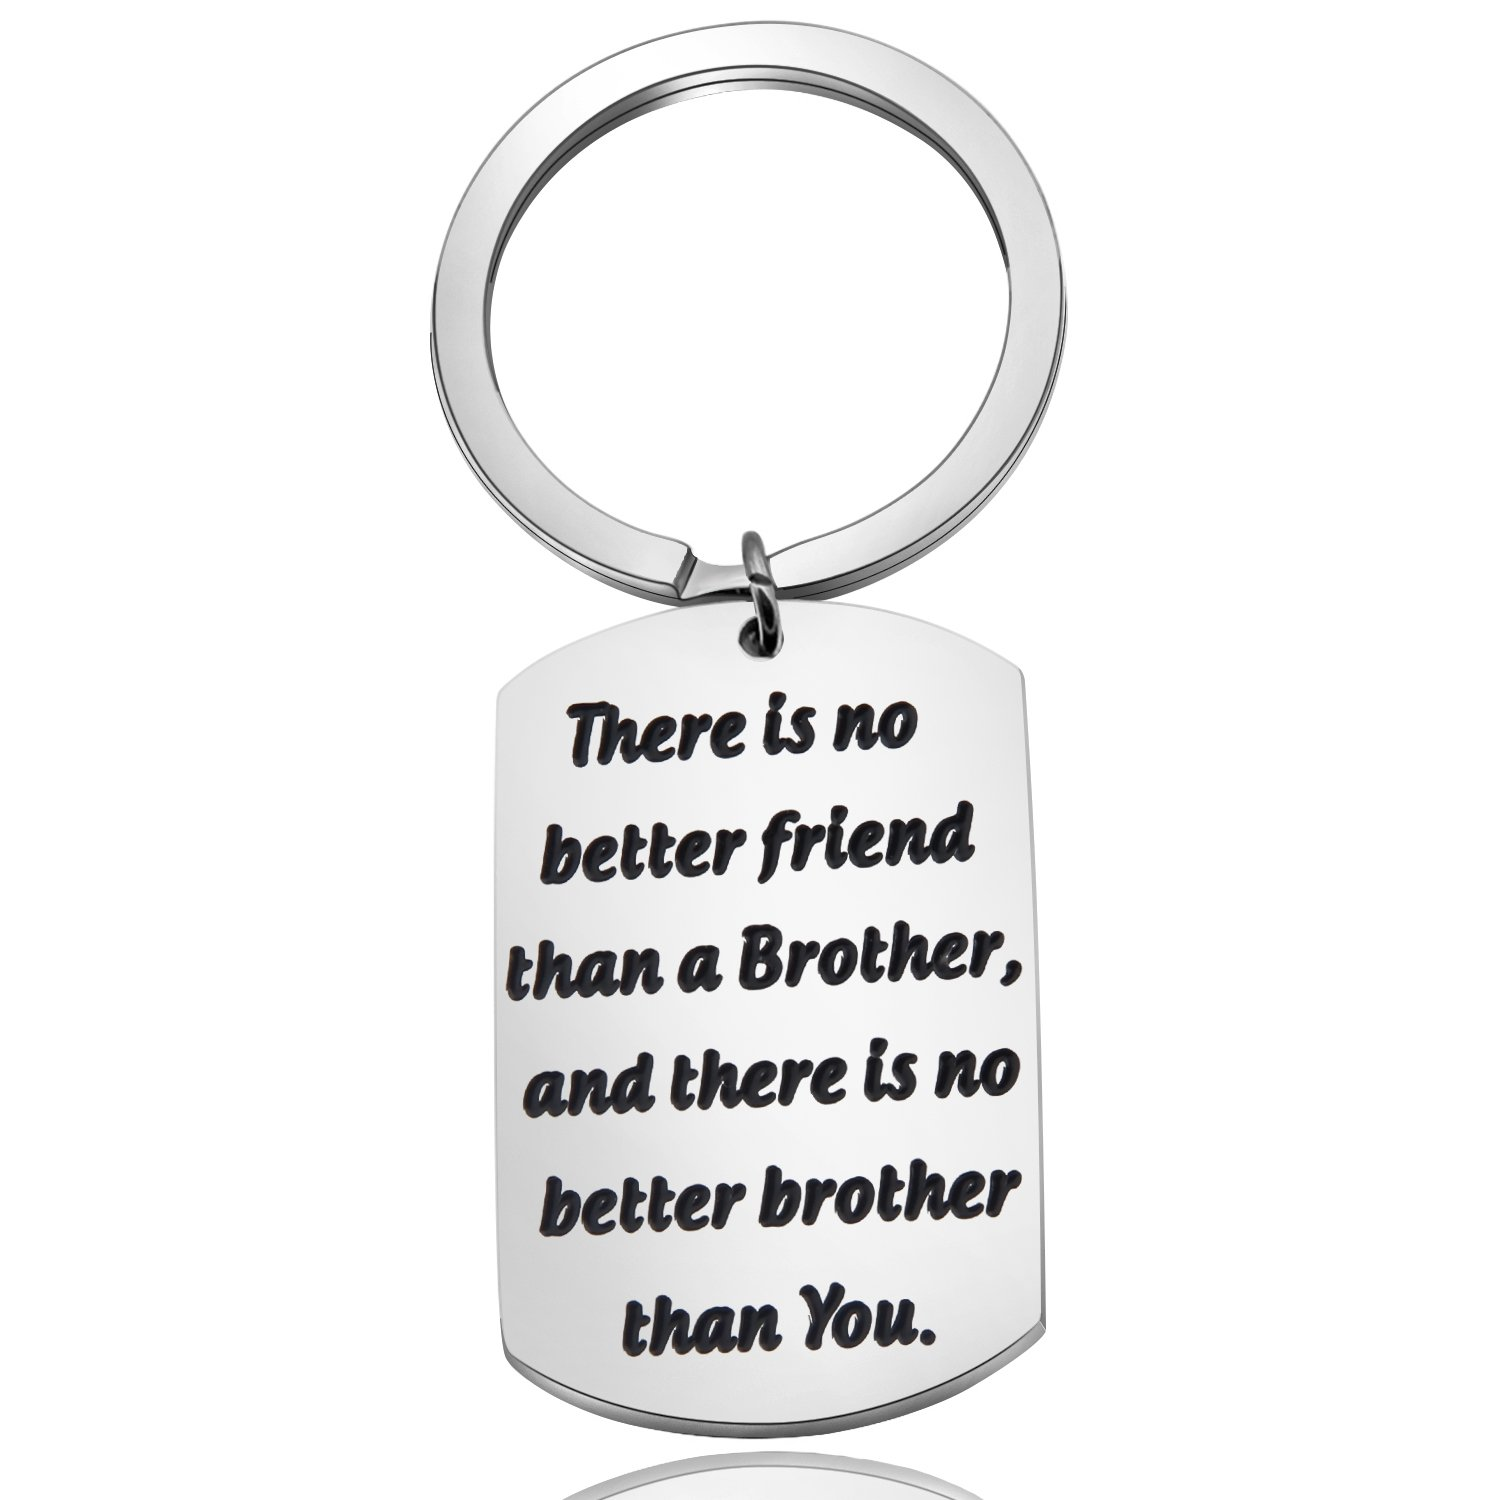 Zuo Bao Brother Gifts Brother keychain There is no better friend than a brother Gift for Friend Family Jewelry (Keyring)